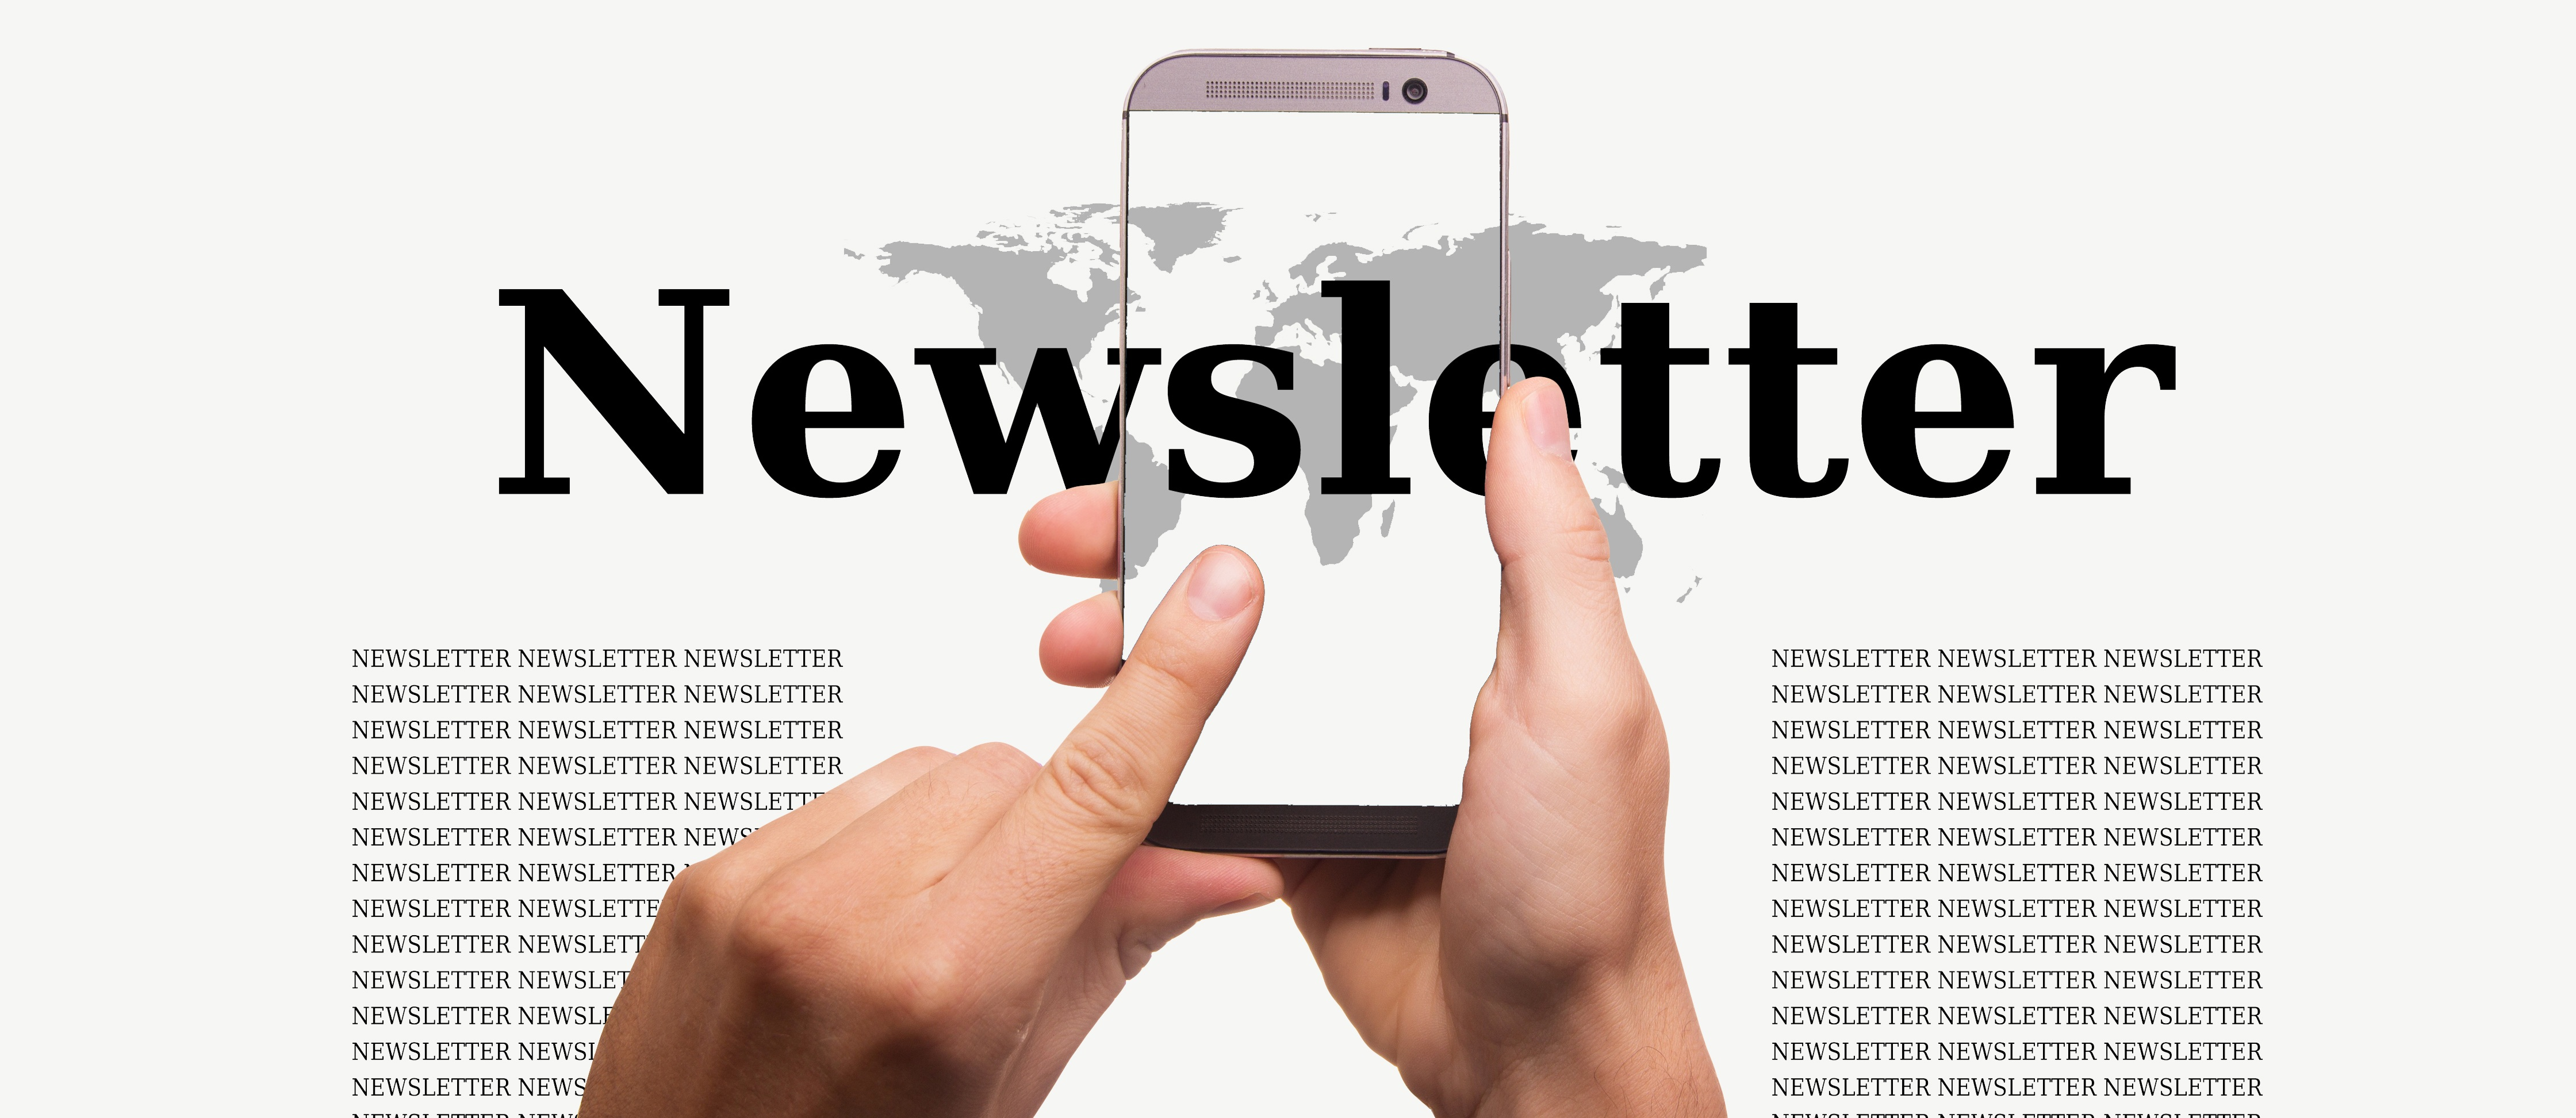 newsletter and smartphone image